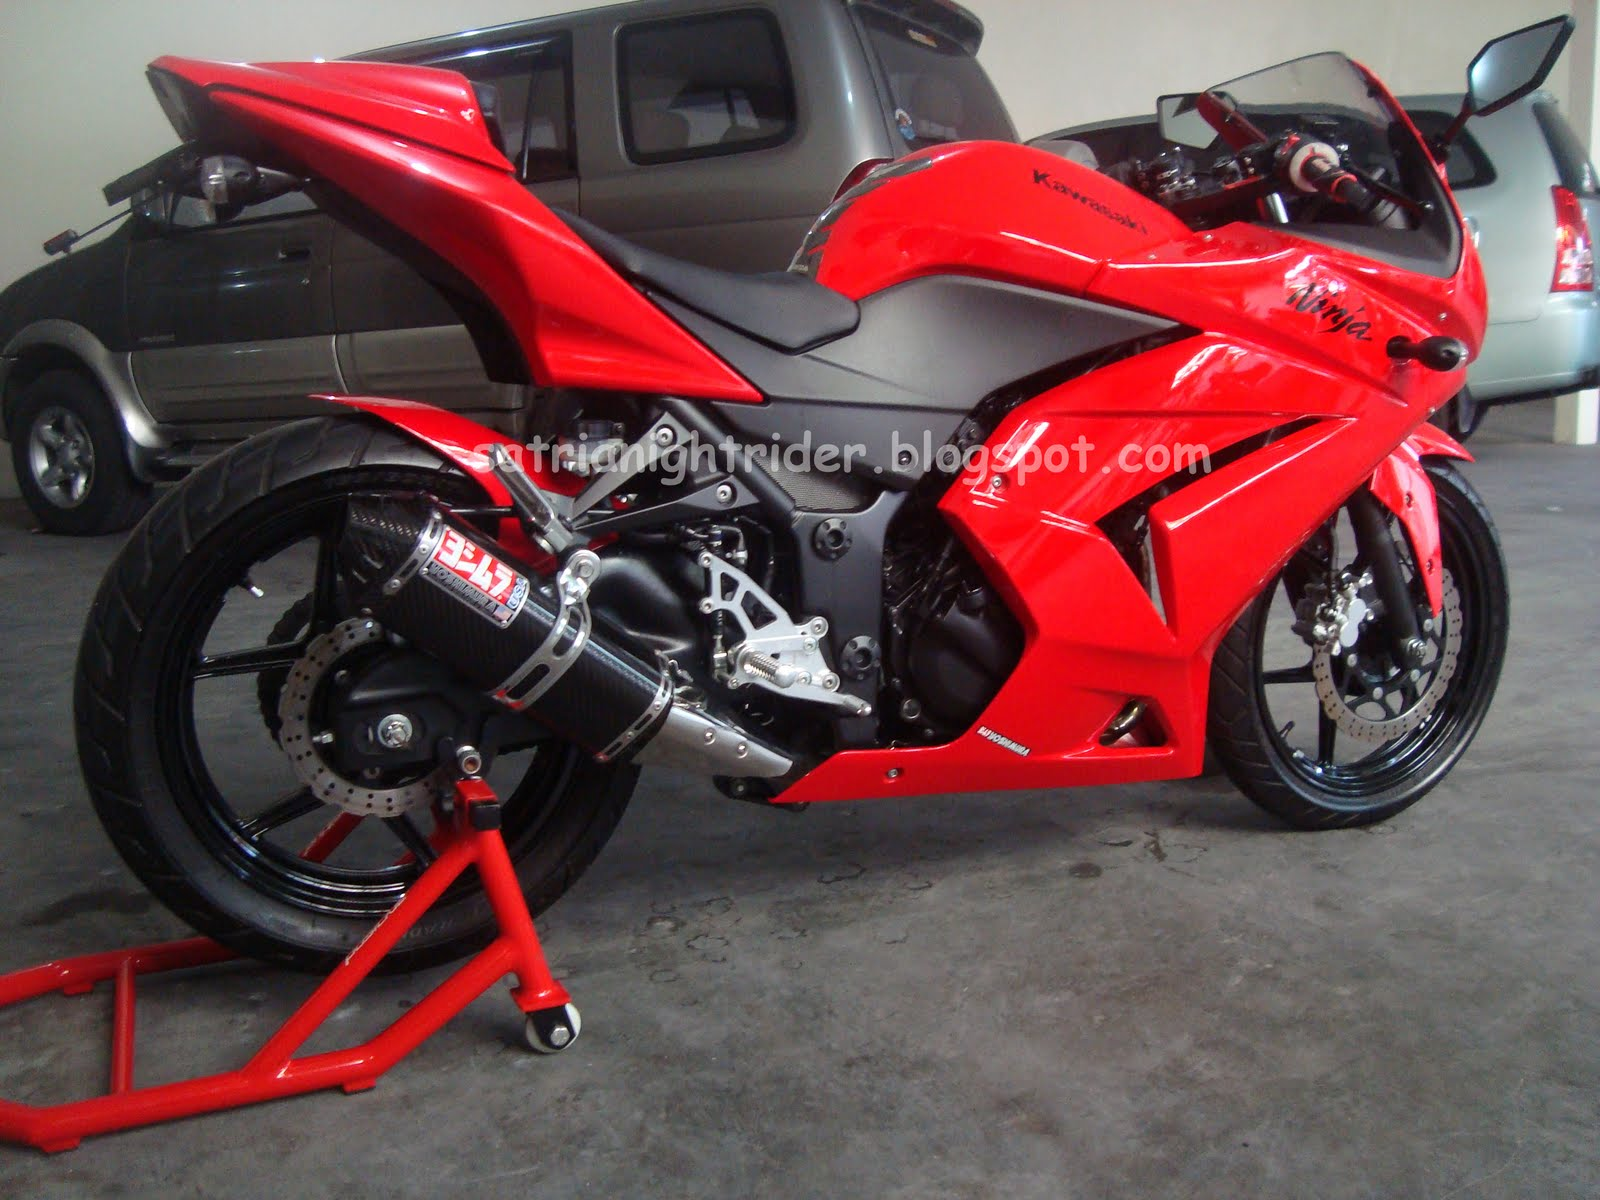 All About My Modifications  Ninja 250r 2009